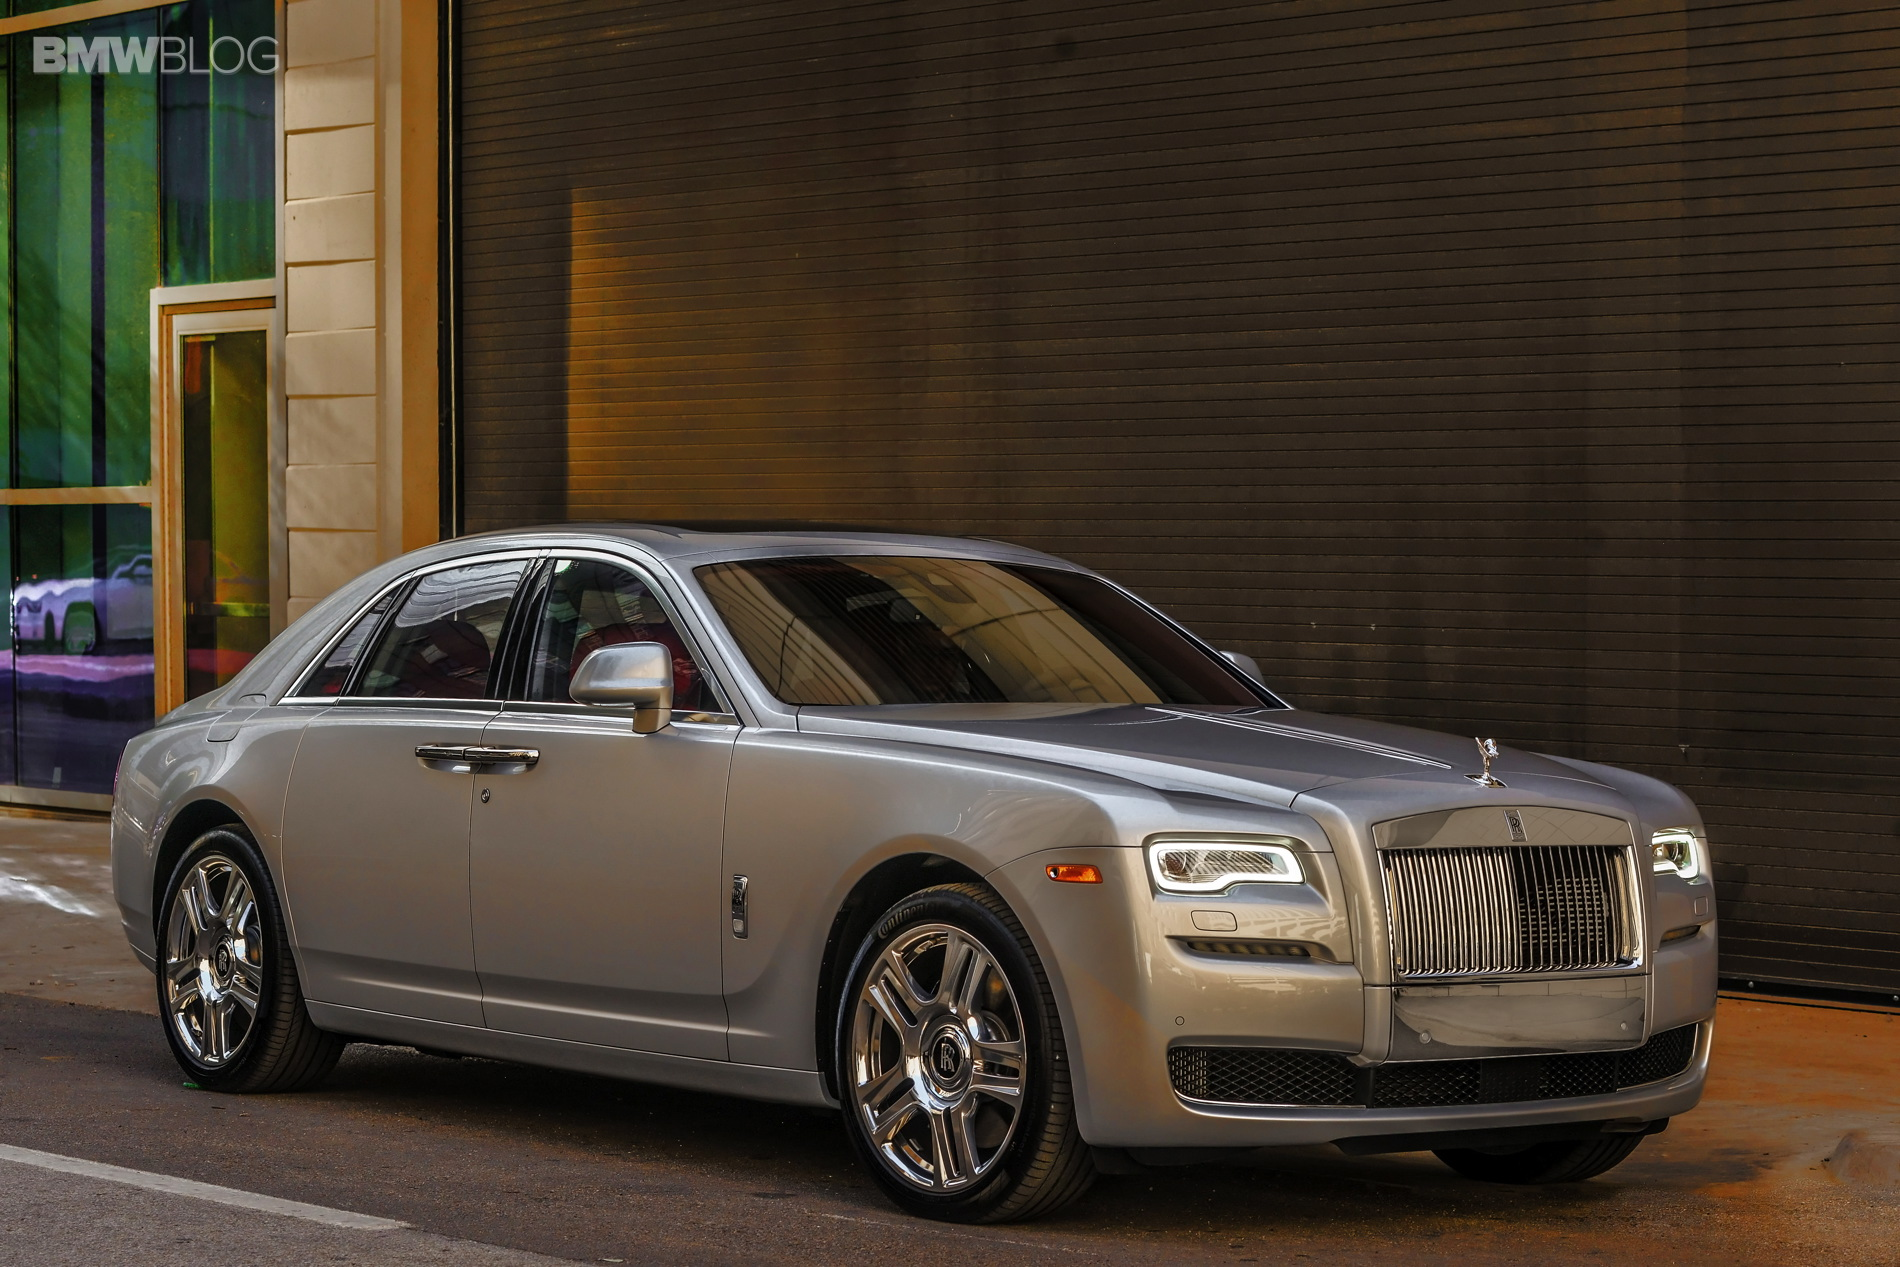 2015 Rolls royce Ghost Series Ii #9